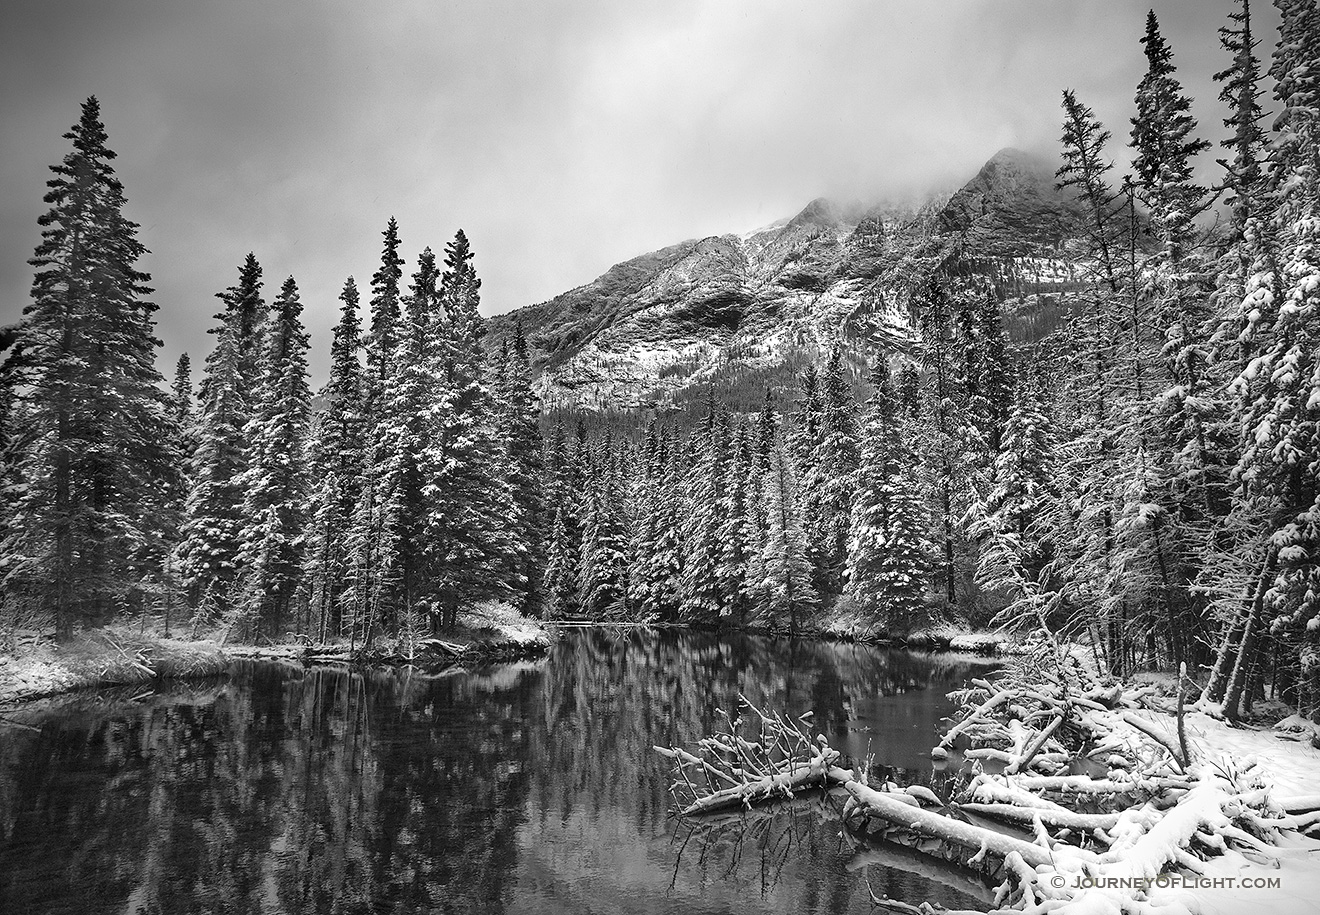 During a light late spring snowfall the water is still and the surroundings quiet. - Canada Picture